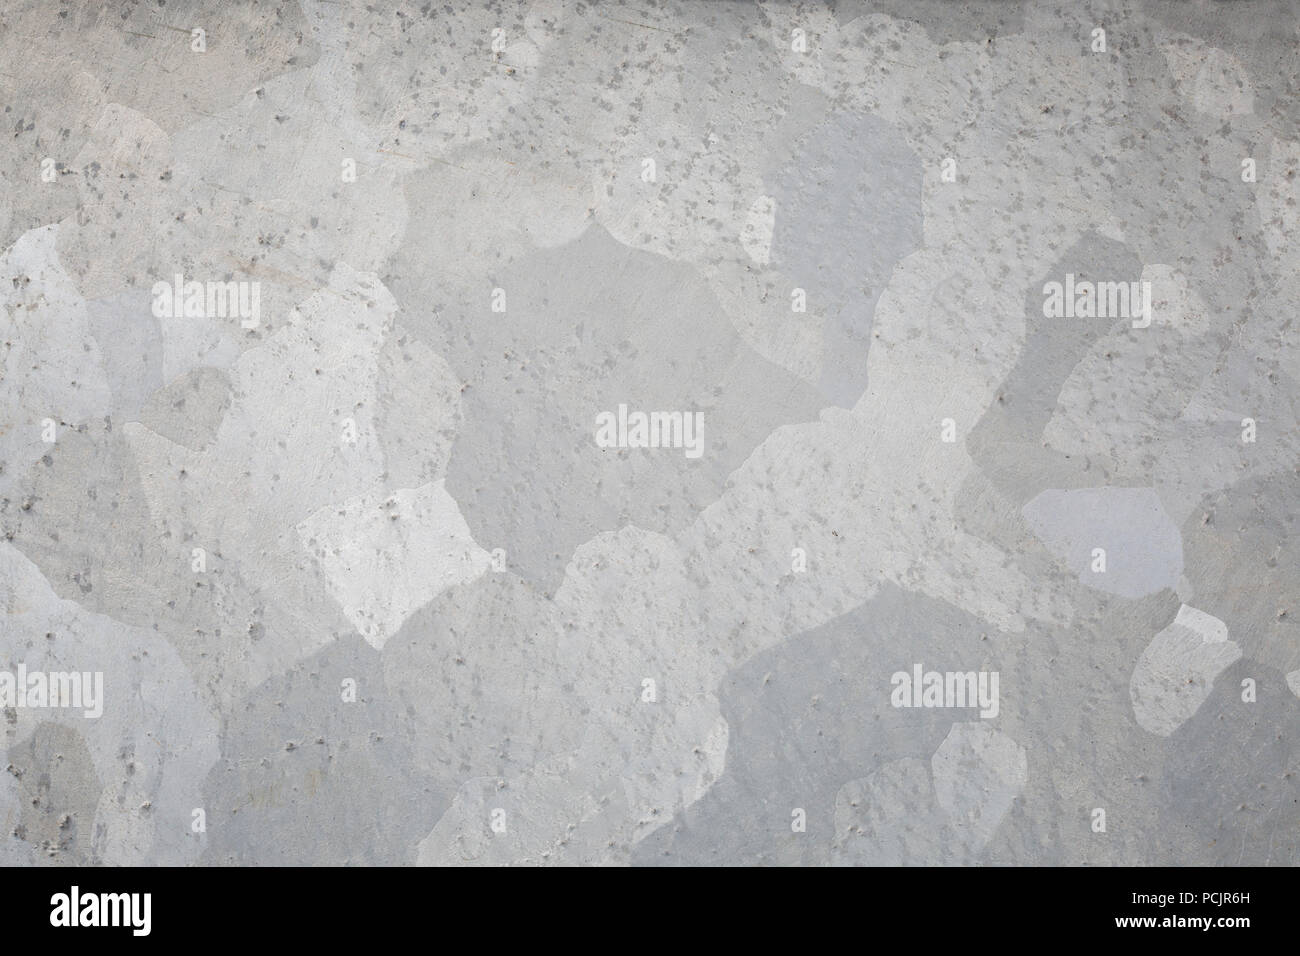 Galvanized metal surface backgrounds. - Stock Image